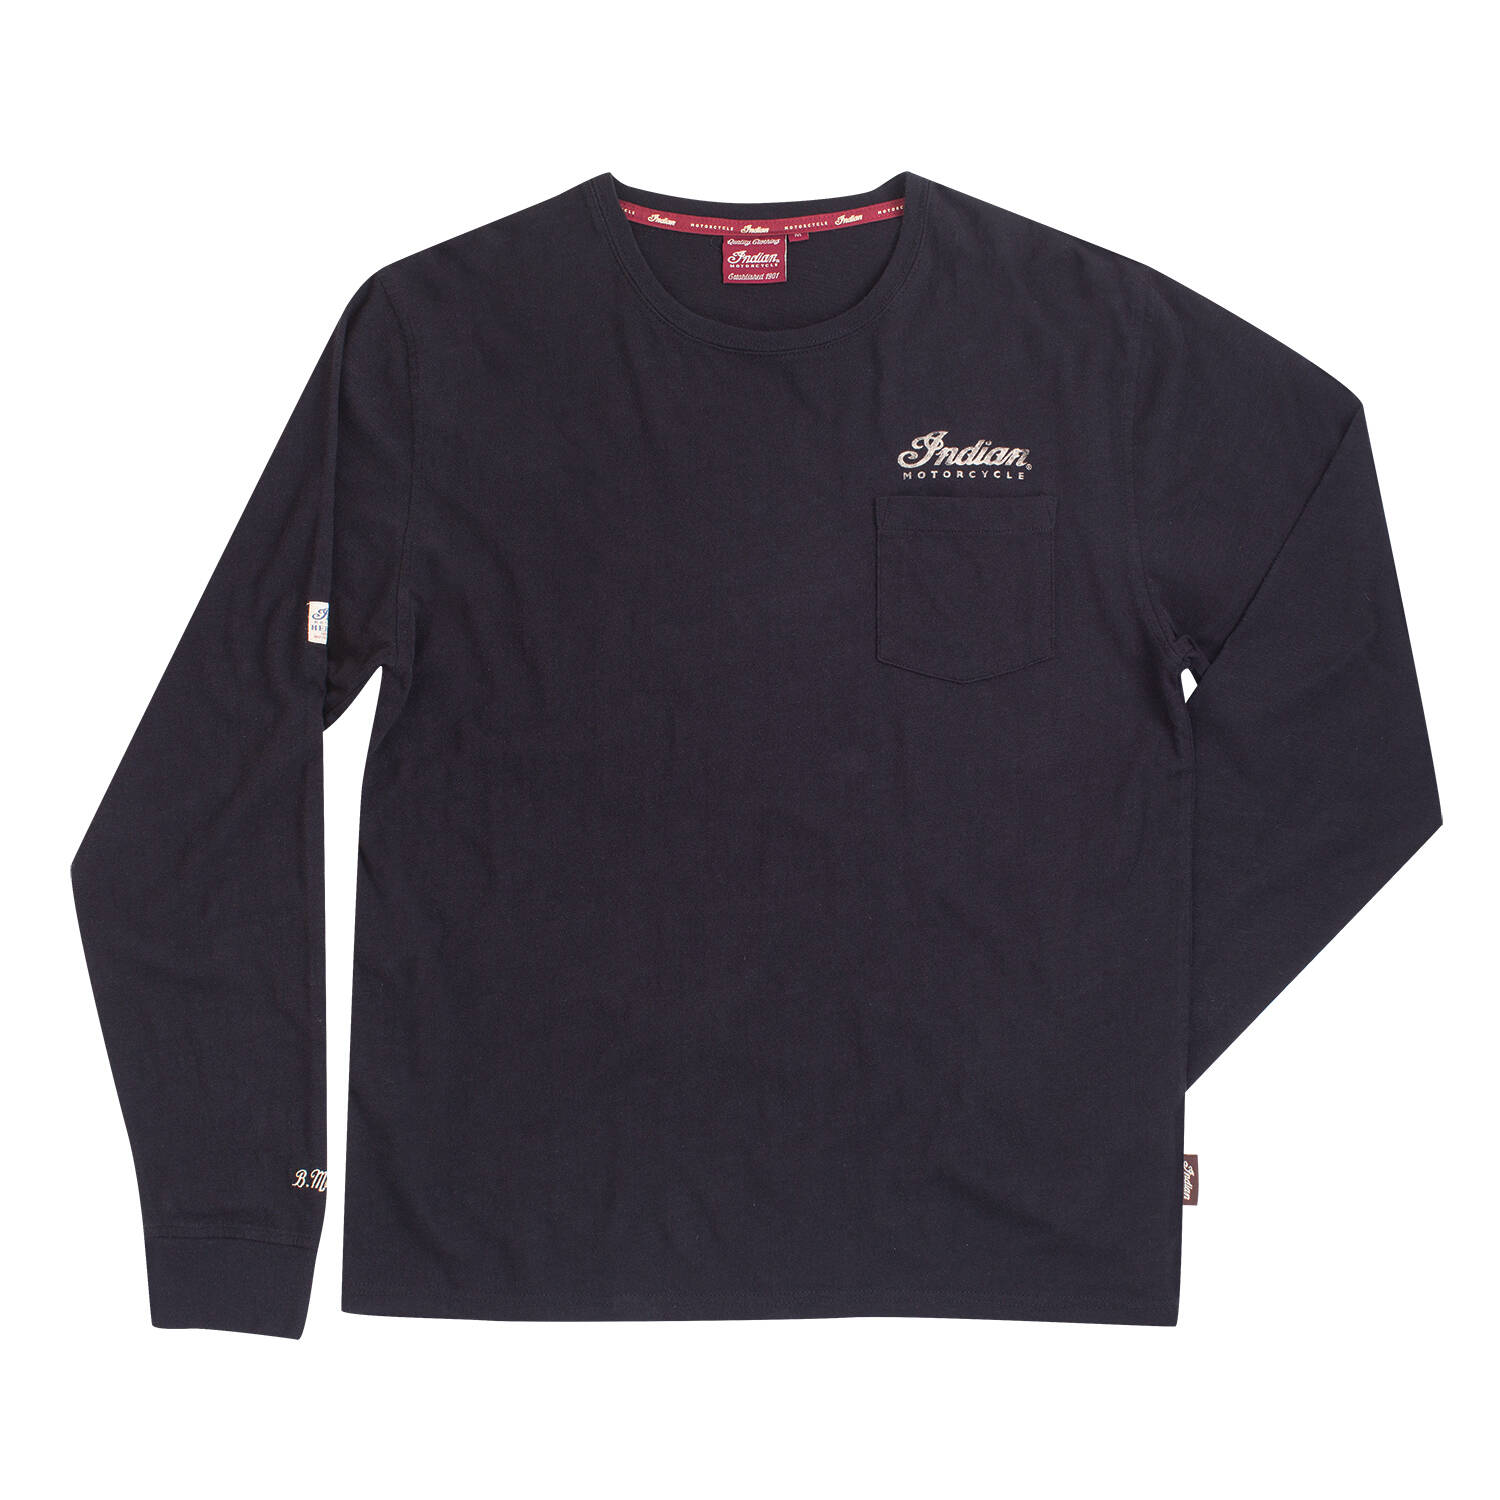 Men's Long-Sleeve Pocket T-Shirt with Munro Special Graphic, Black